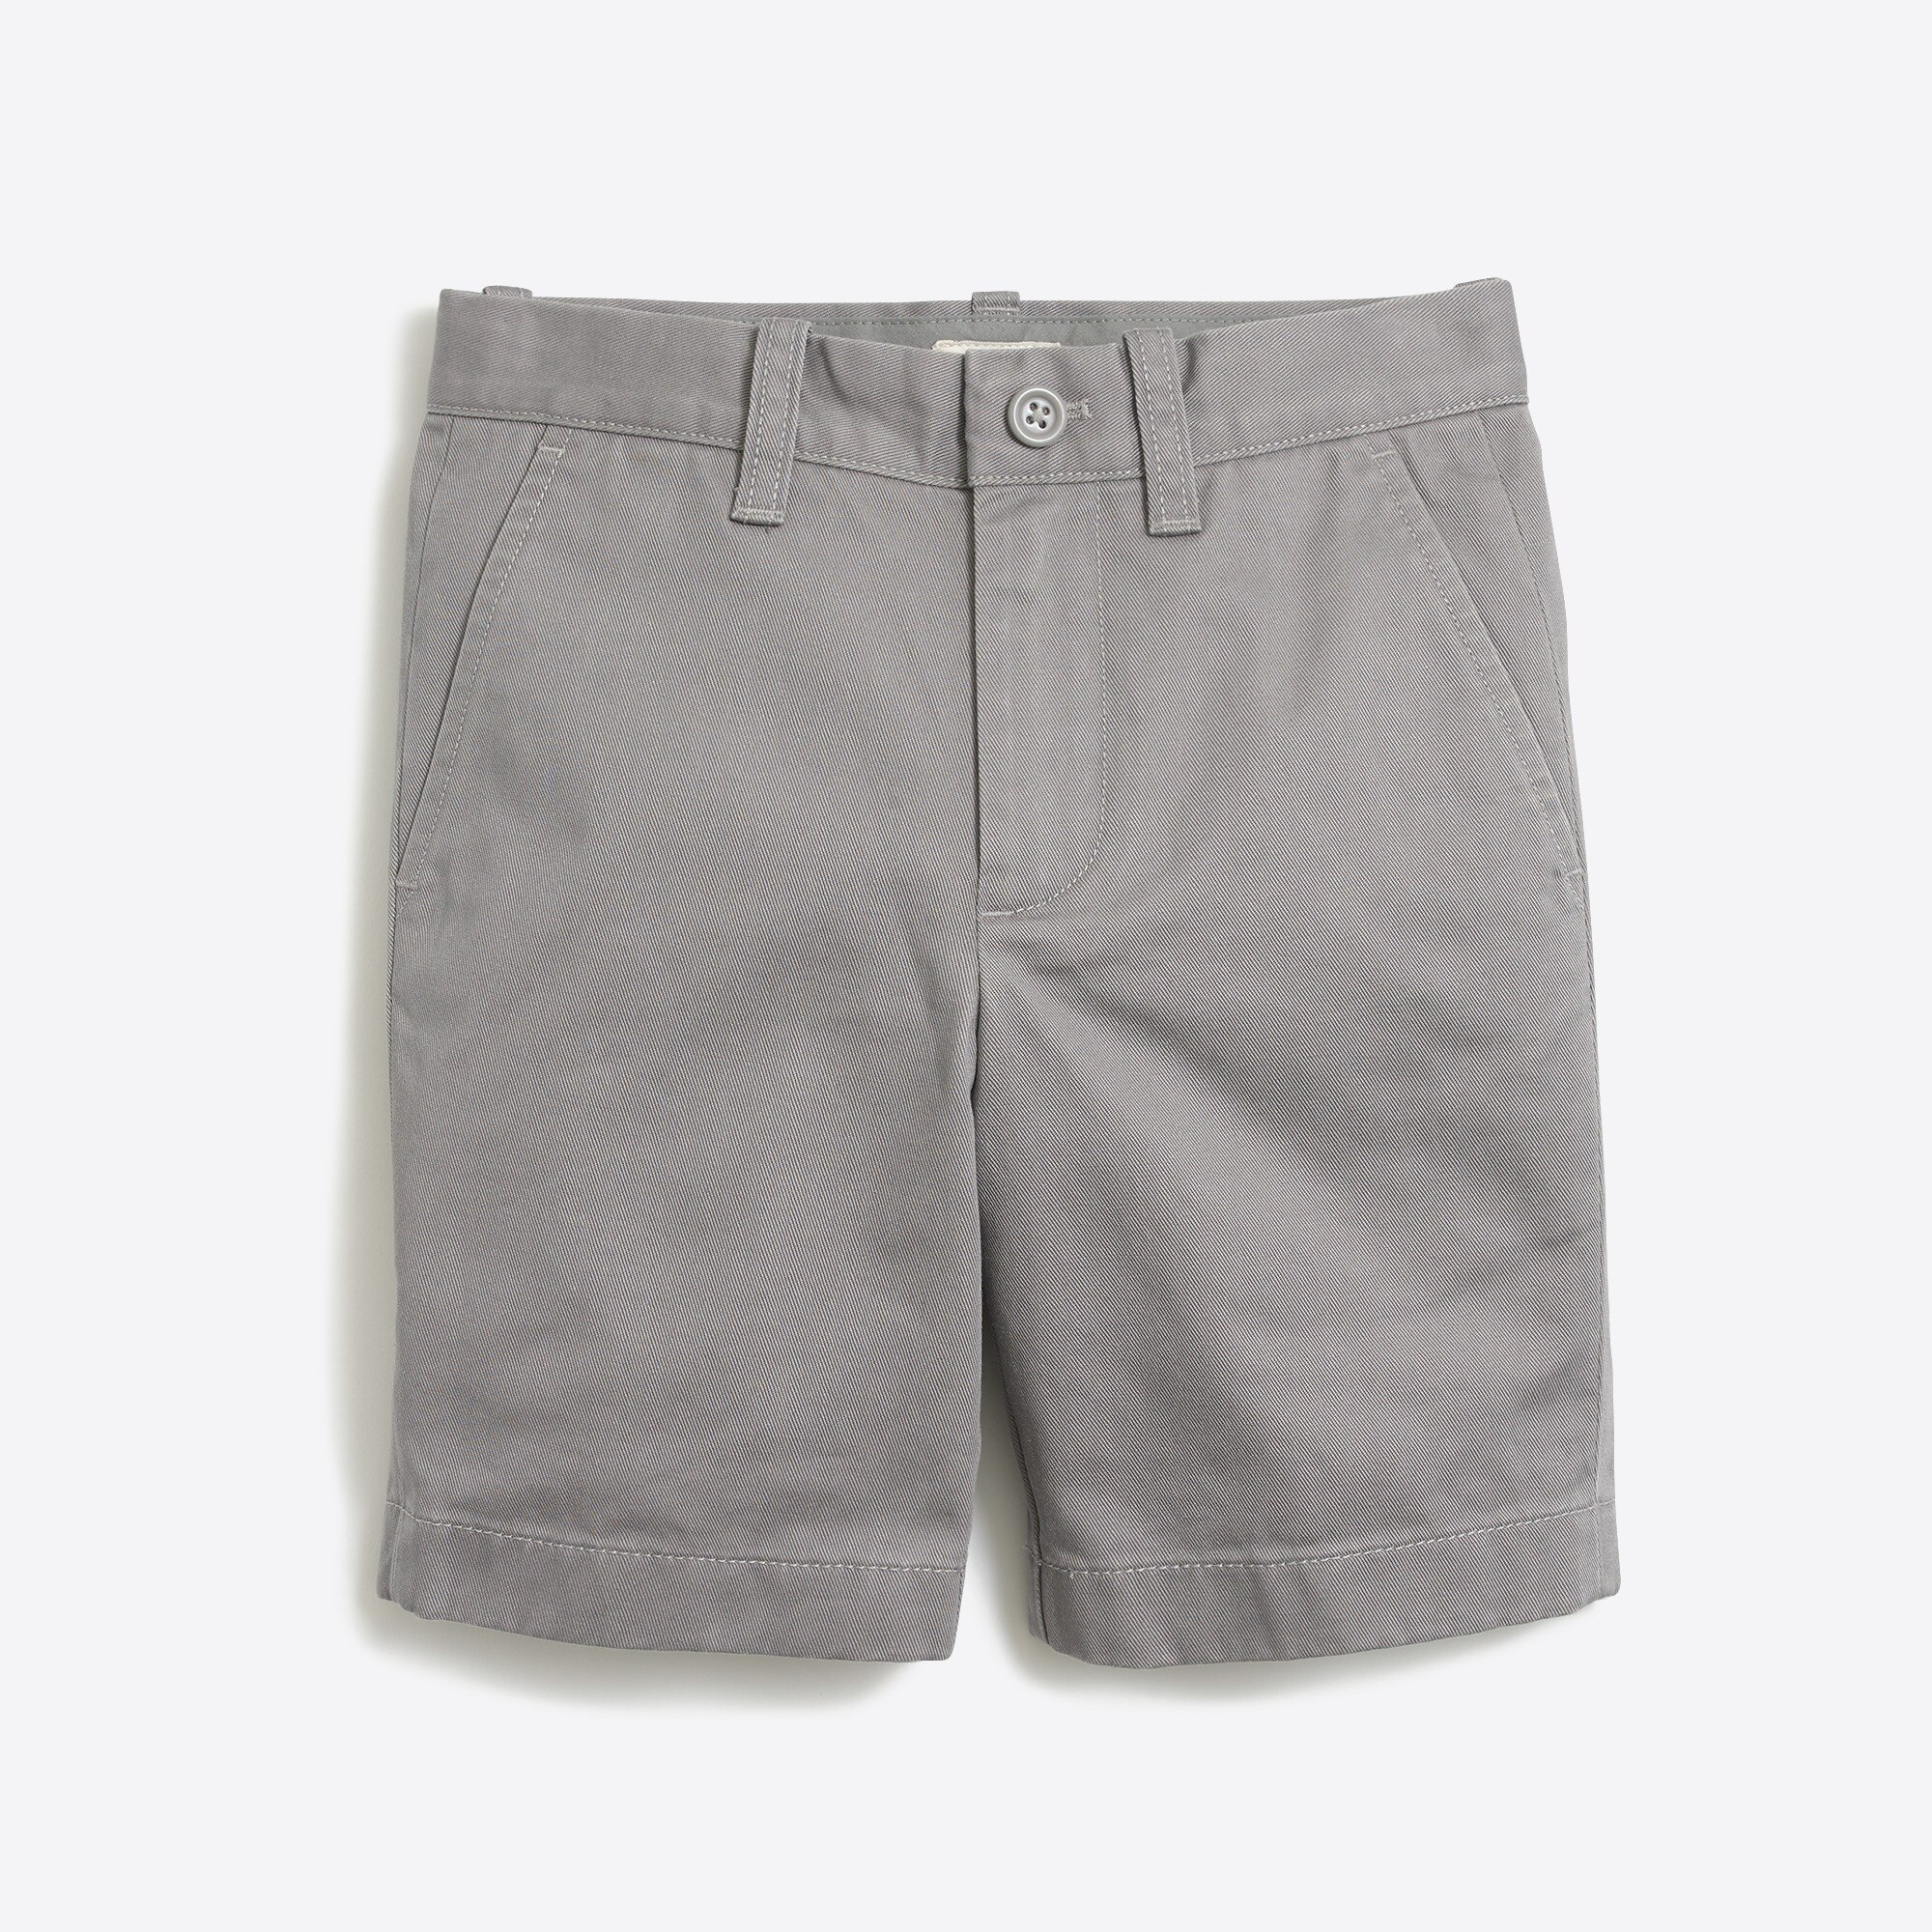 Boys' Gramercy short in chino factoryboys online exclusives c